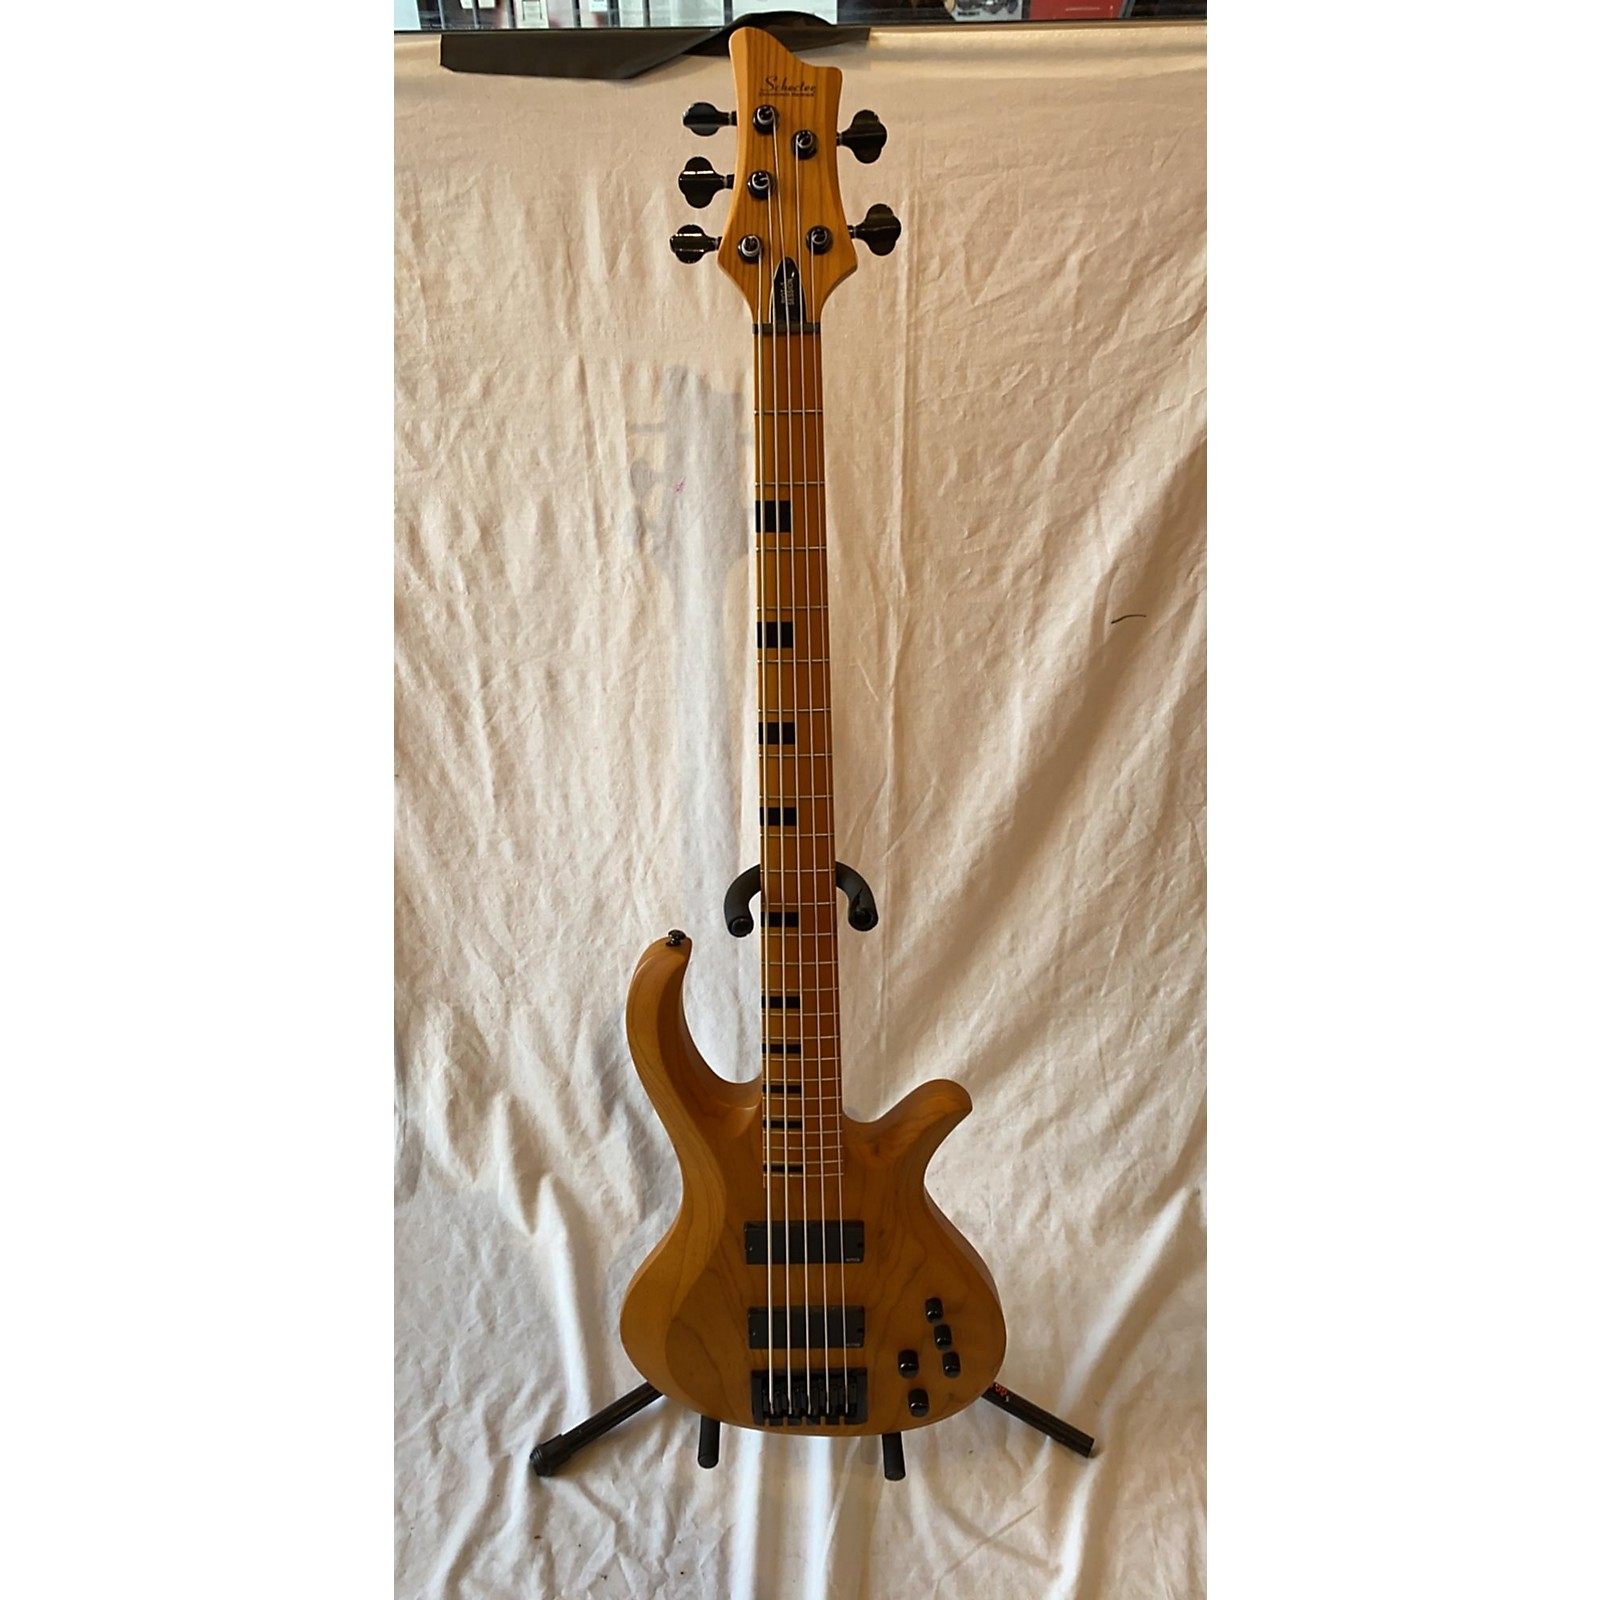 Schecter Guitar Research 2017 RIOT 5 SESSION Electric Bass Guitar